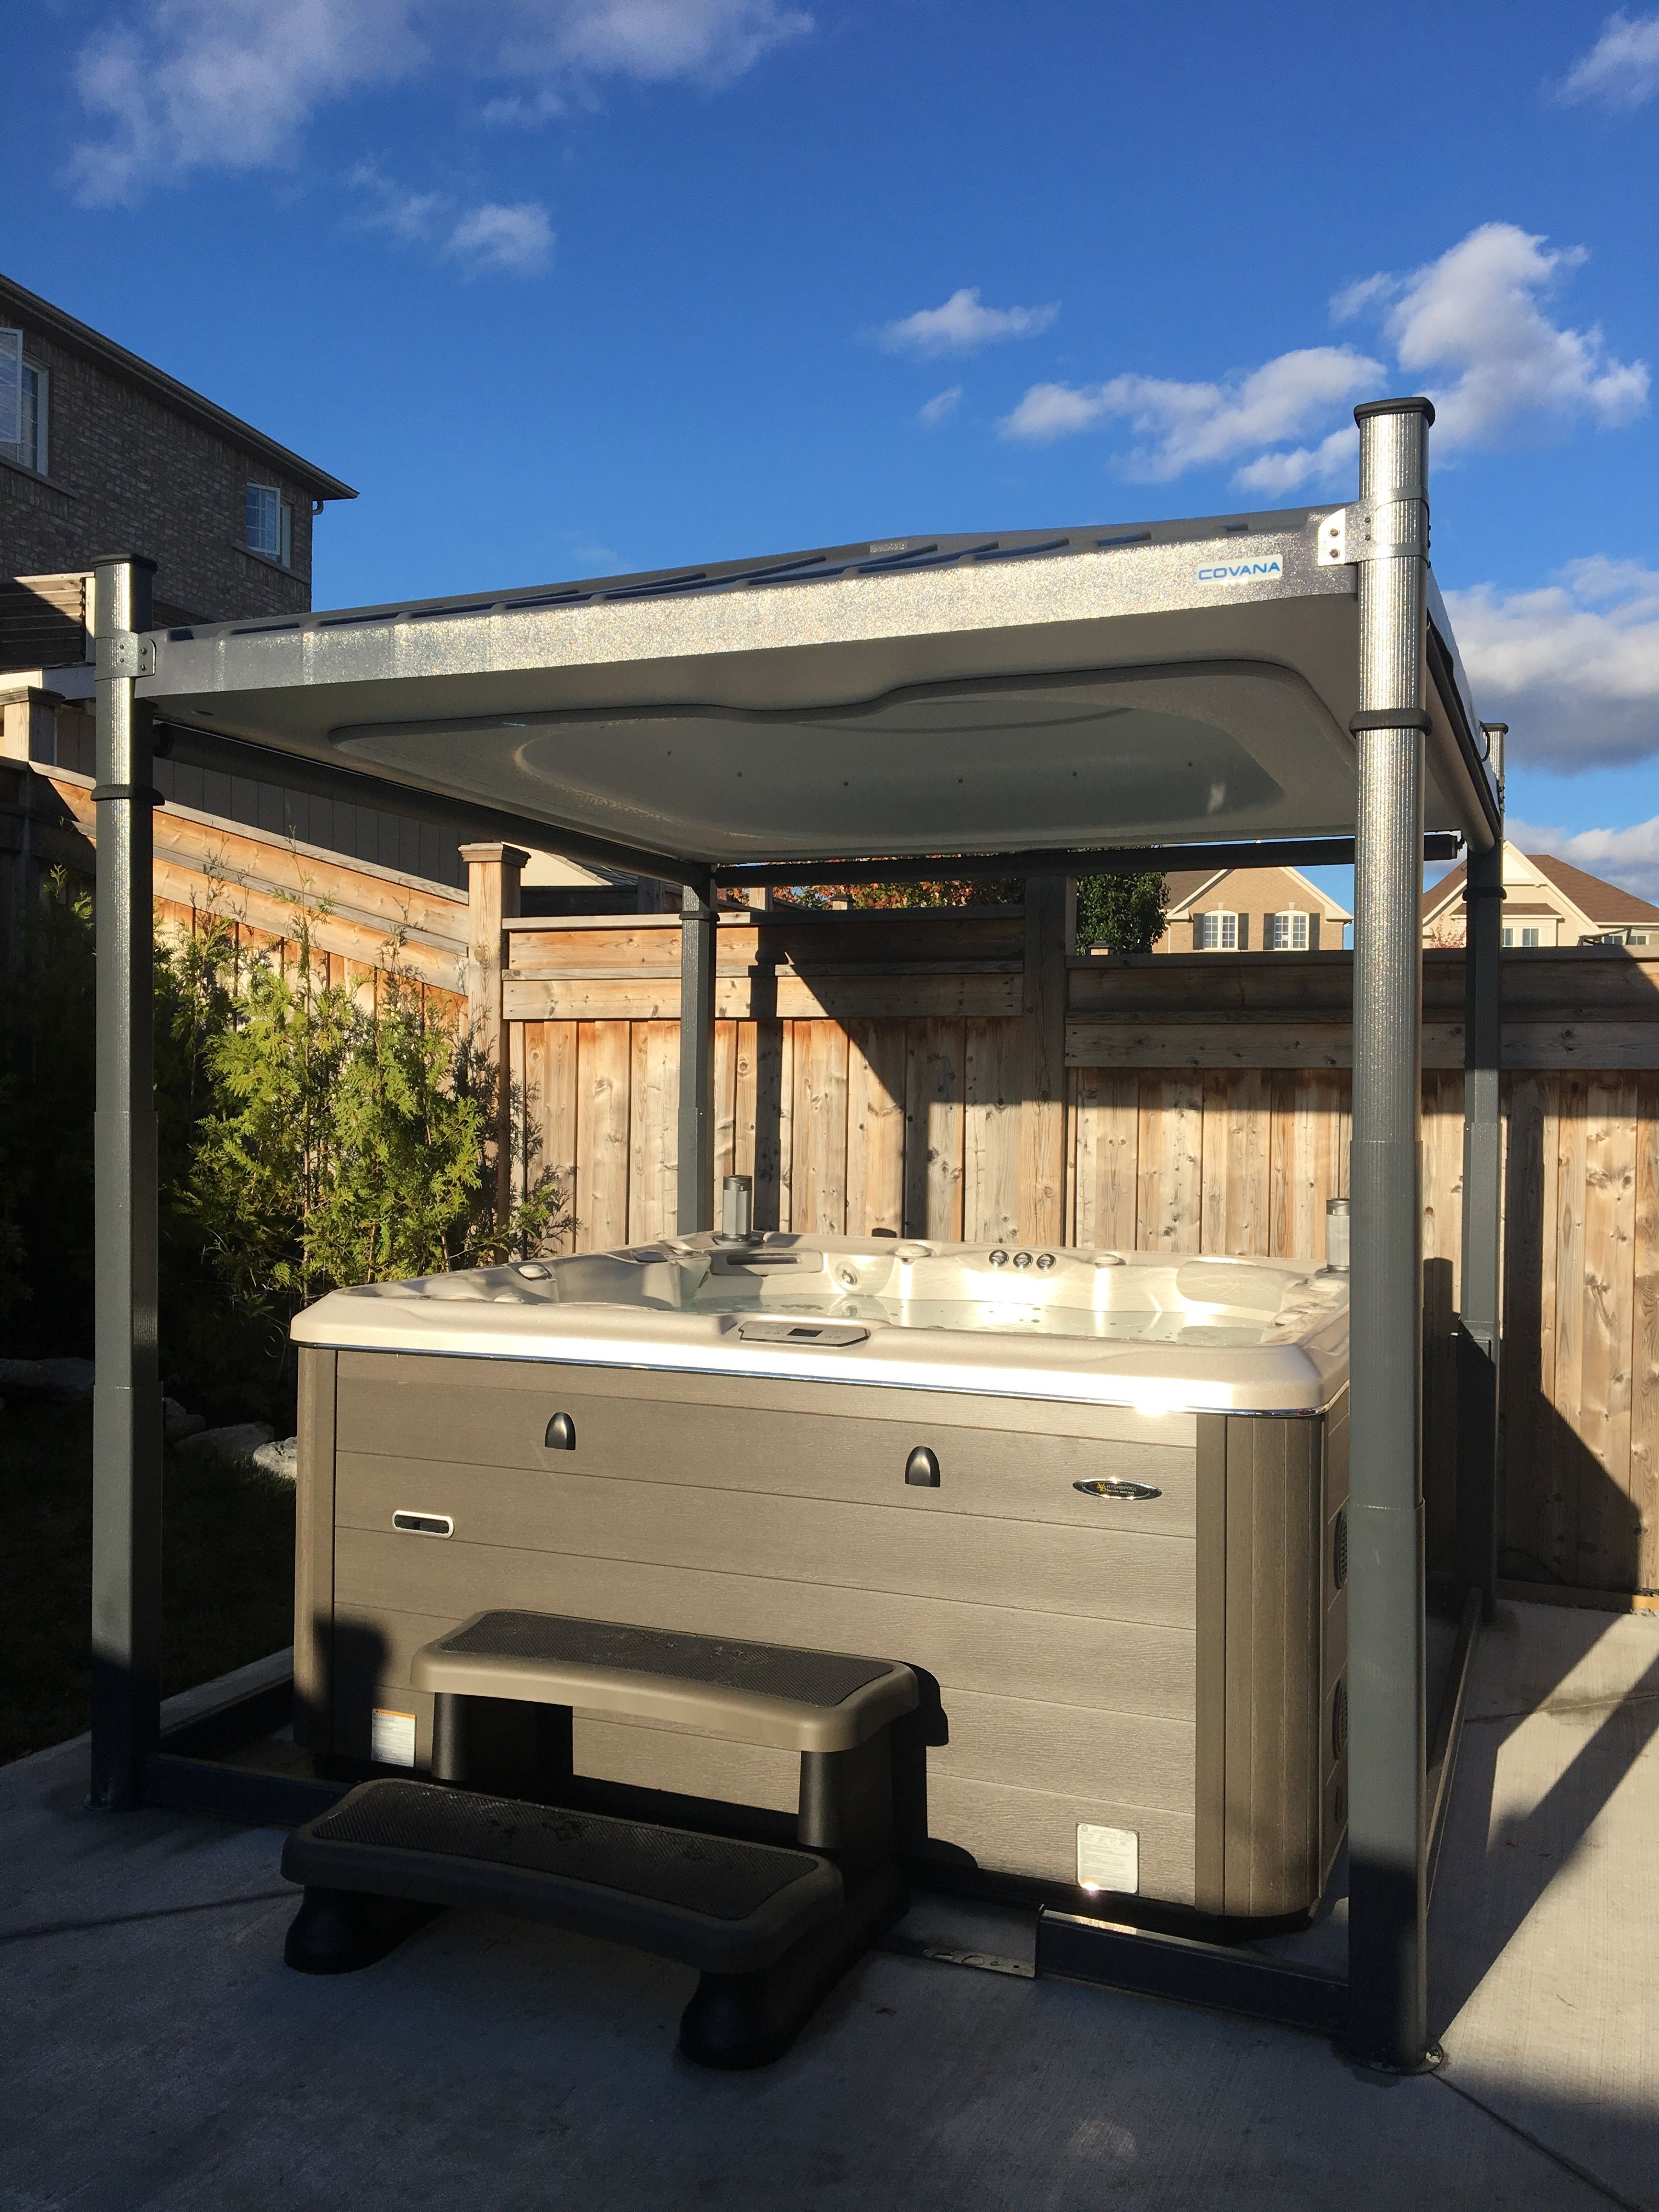 The Covana, an automatic hot tub and swim spa cover made